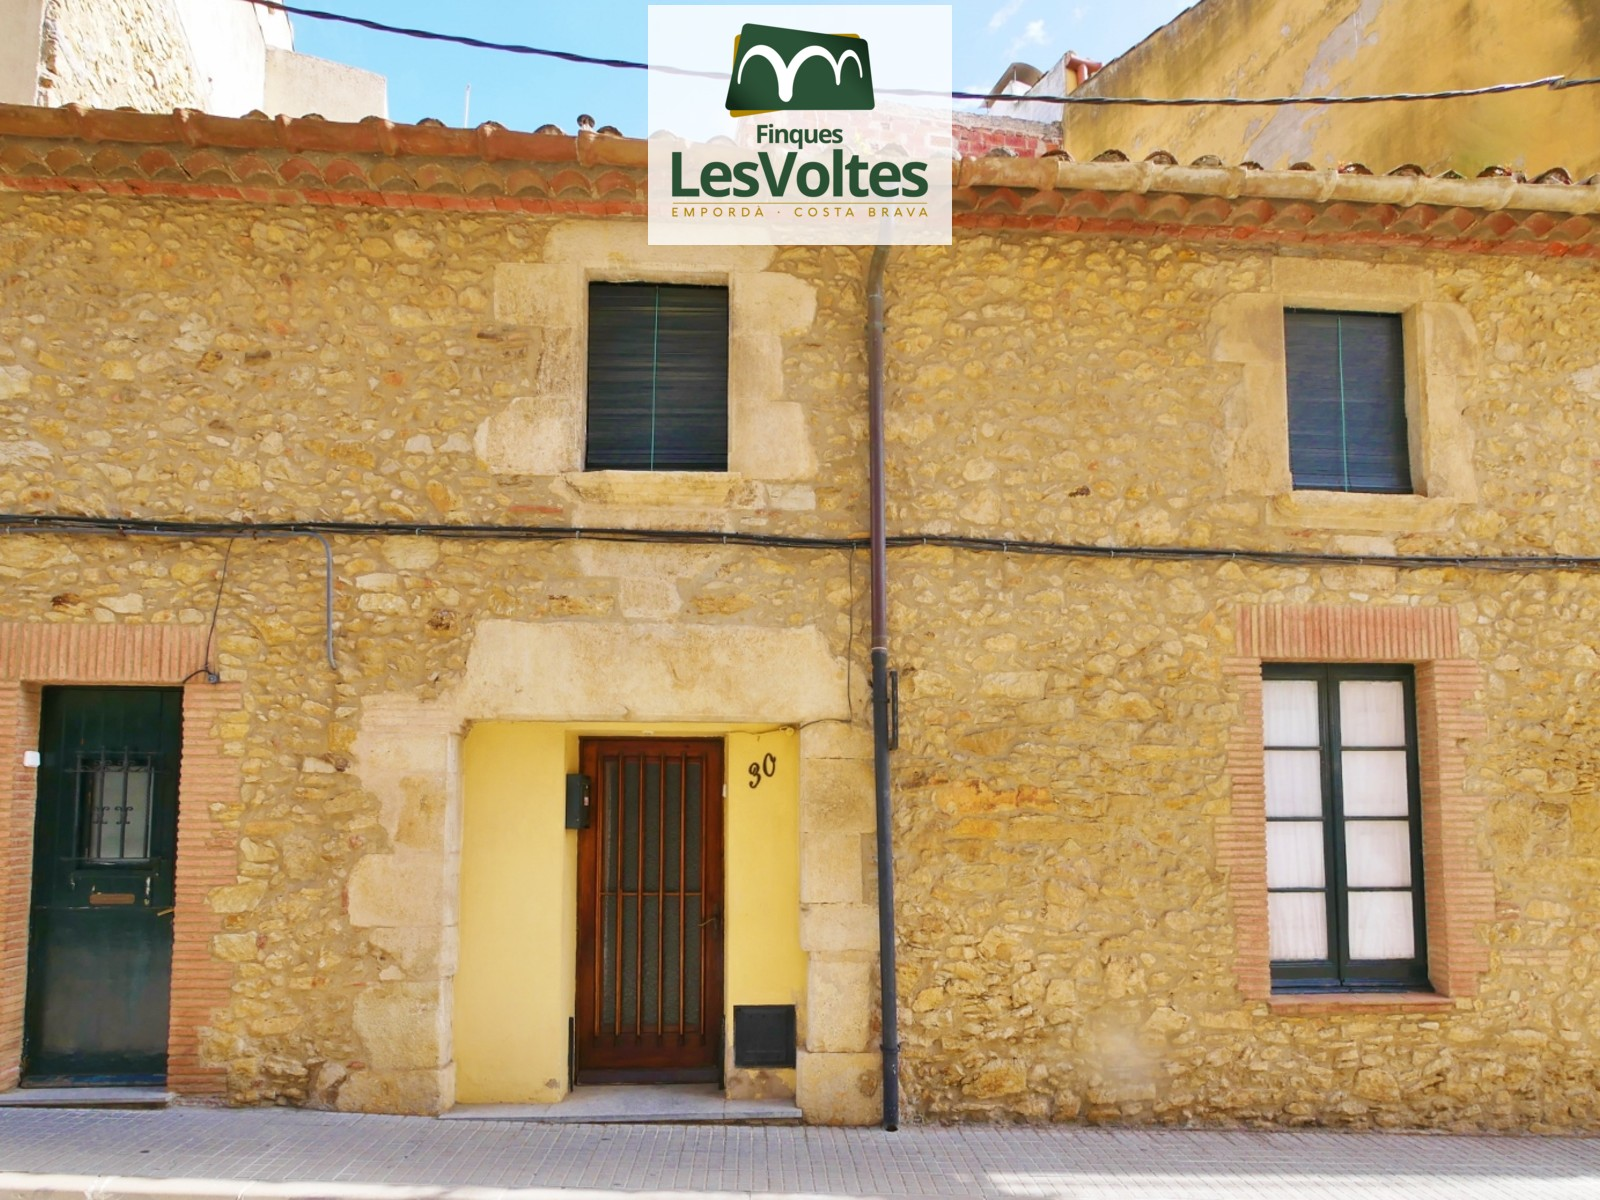 GREAT RUSTIC VILLAGE HOUSE FOR SALE IN PALAFRUGELL WITH PATIO. PRIVILEGED LOCATION NEAR THE CENTER.